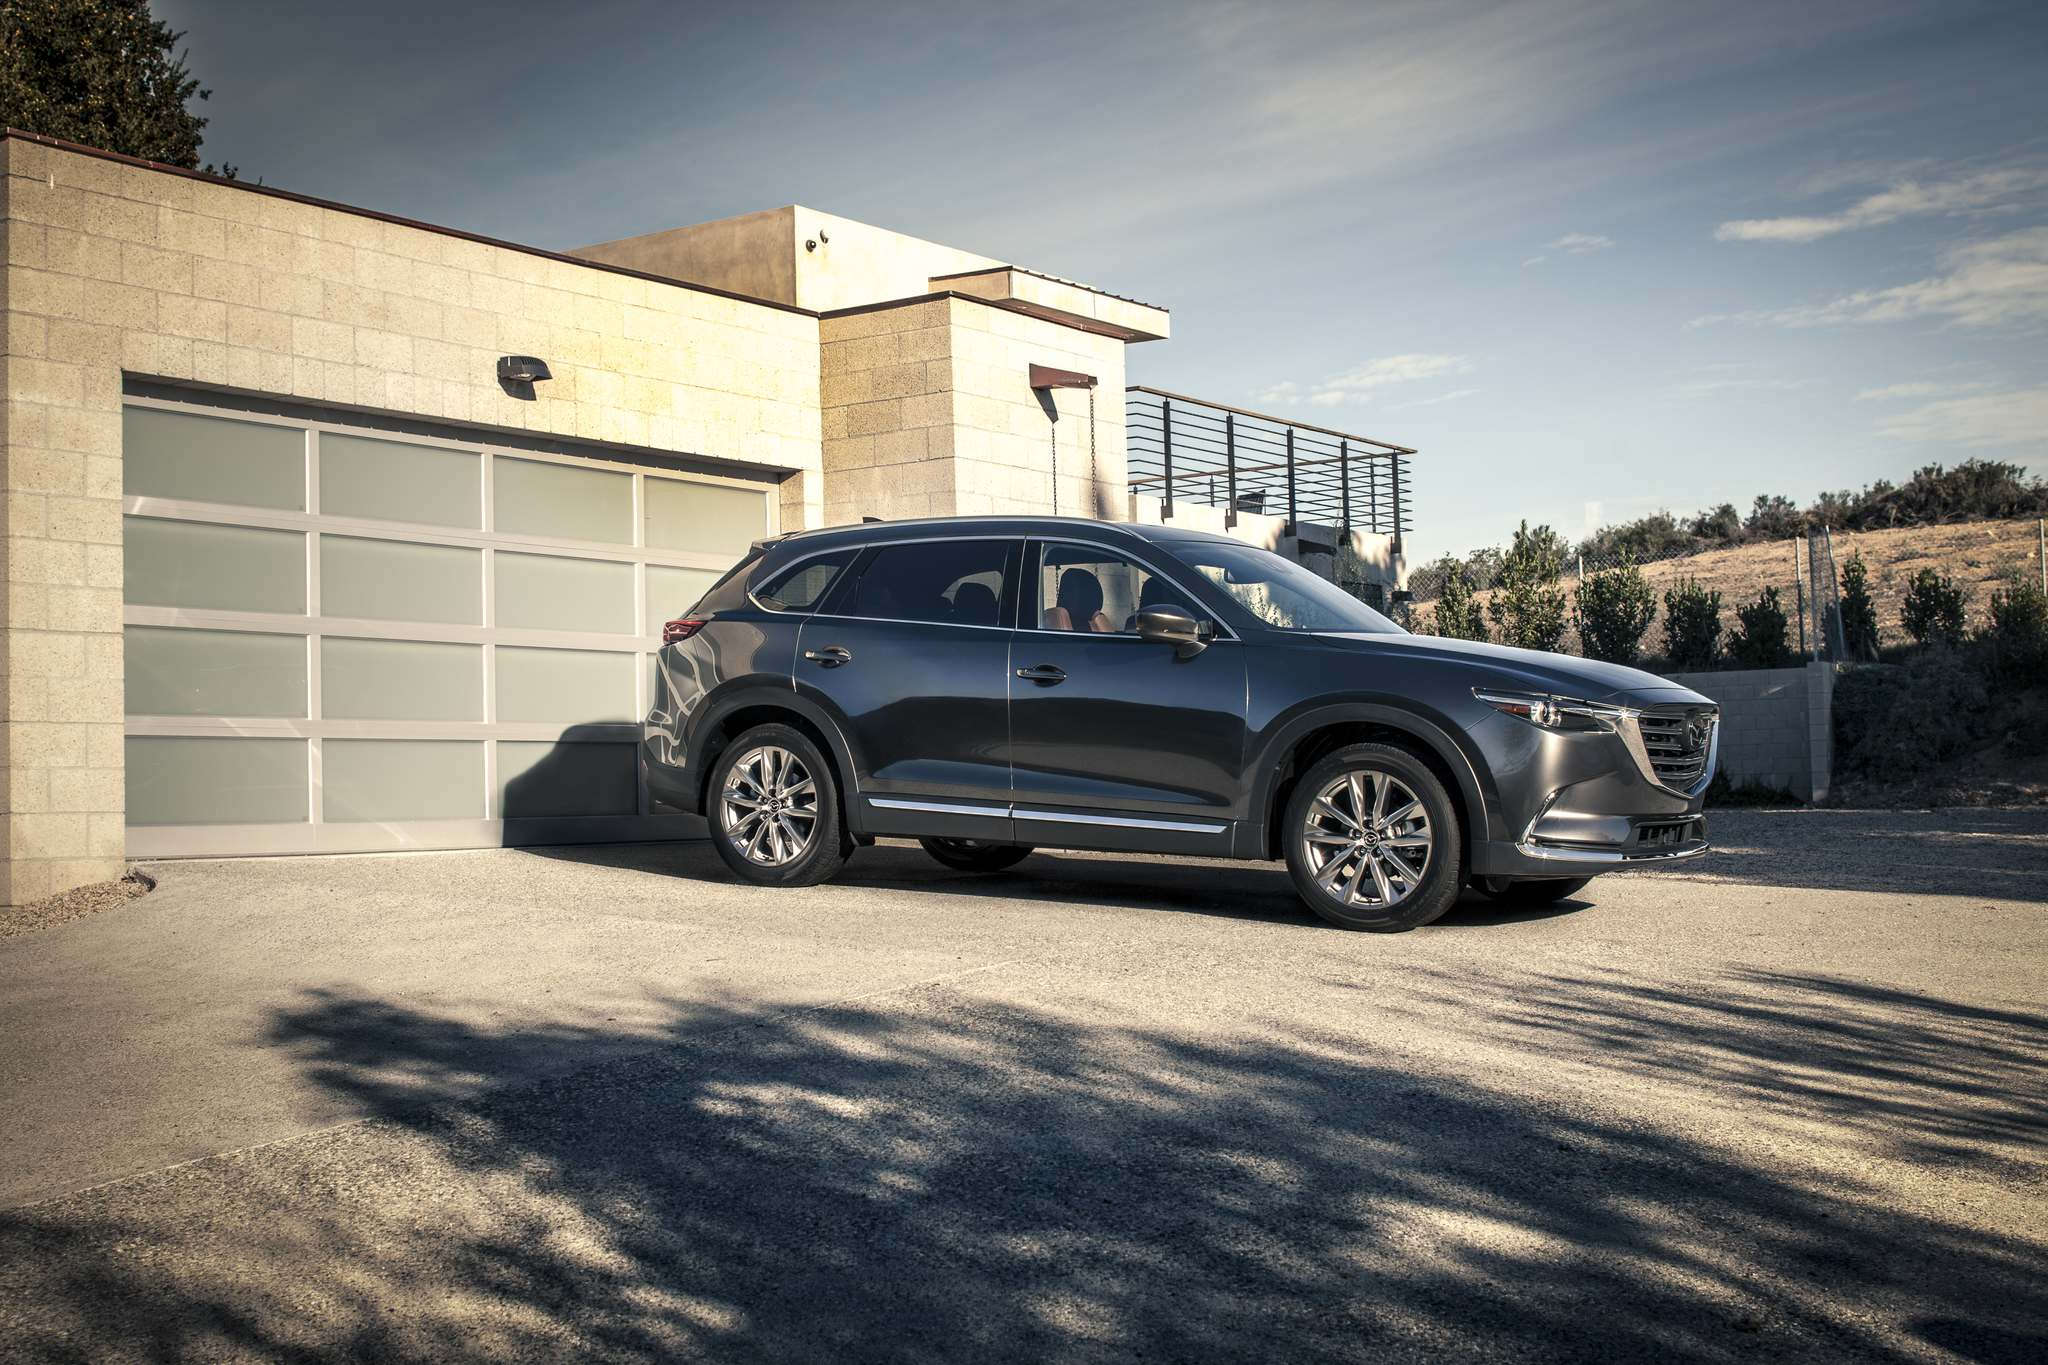 <p>As a seven-seater, the CX-9 is spacious for passengers, while leaving a high cargo capacity.</p>